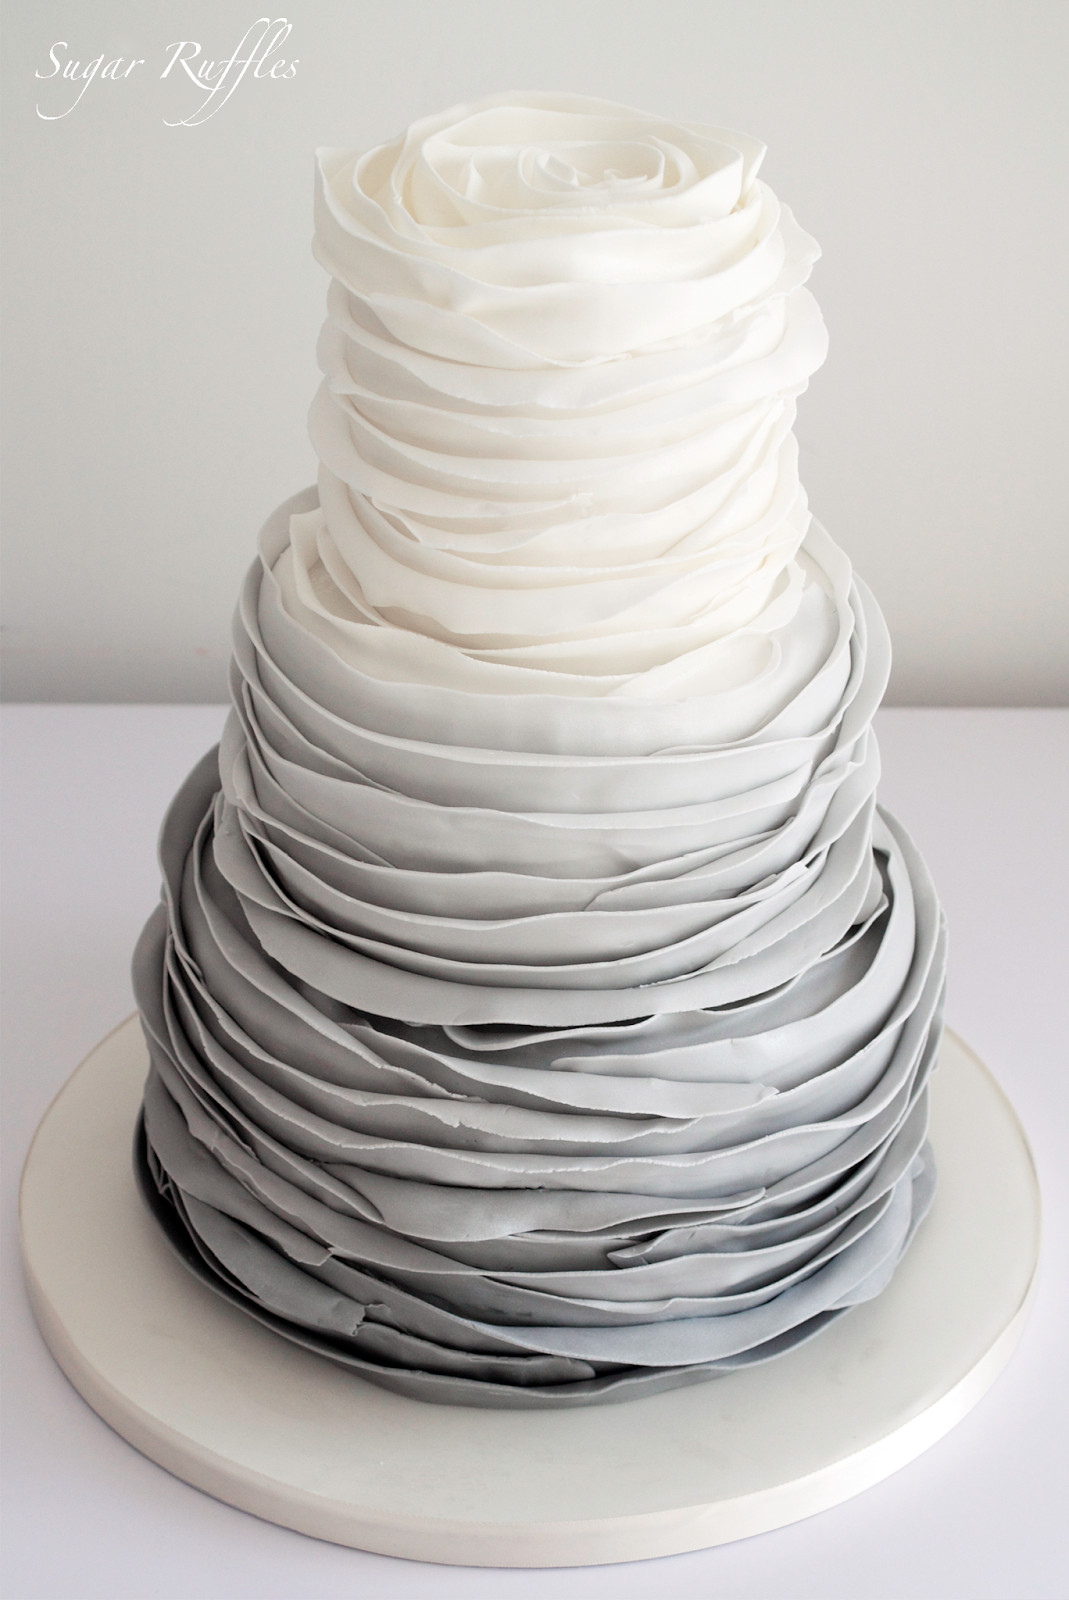 Ruffles Wedding Cakes  Sugar Ruffles Elegant Wedding Cakes Barrow in Furness